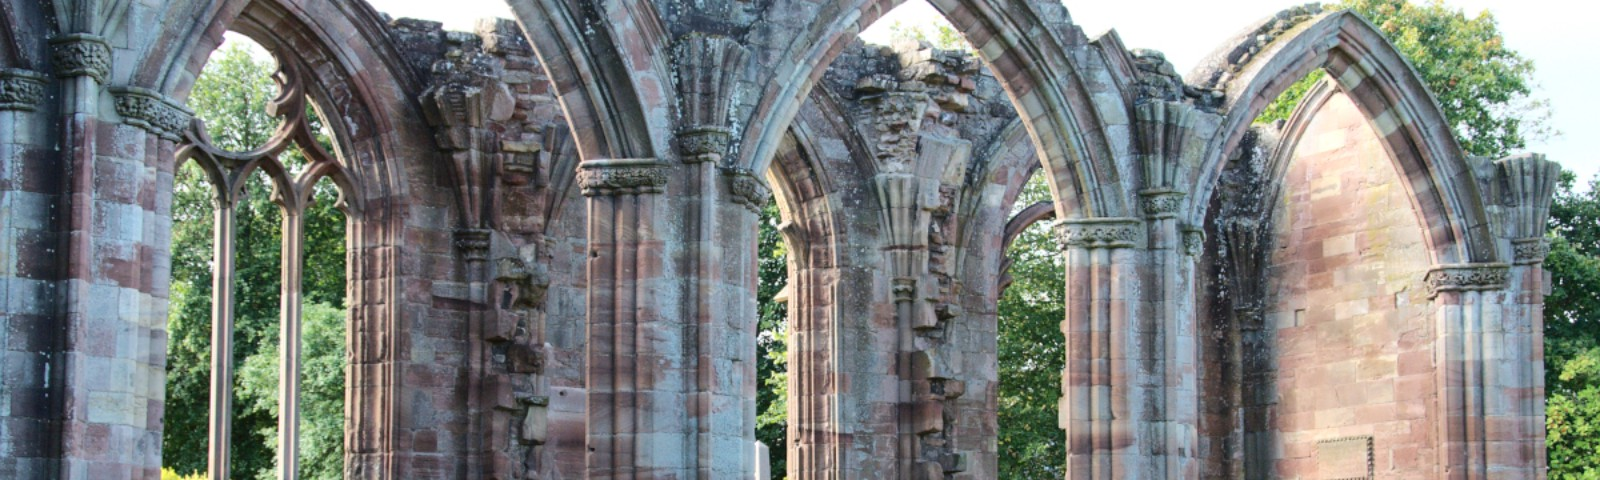 The starting point for Saint Cuthbert's Way, Melrose Abbey, Scotland. Author Photo.